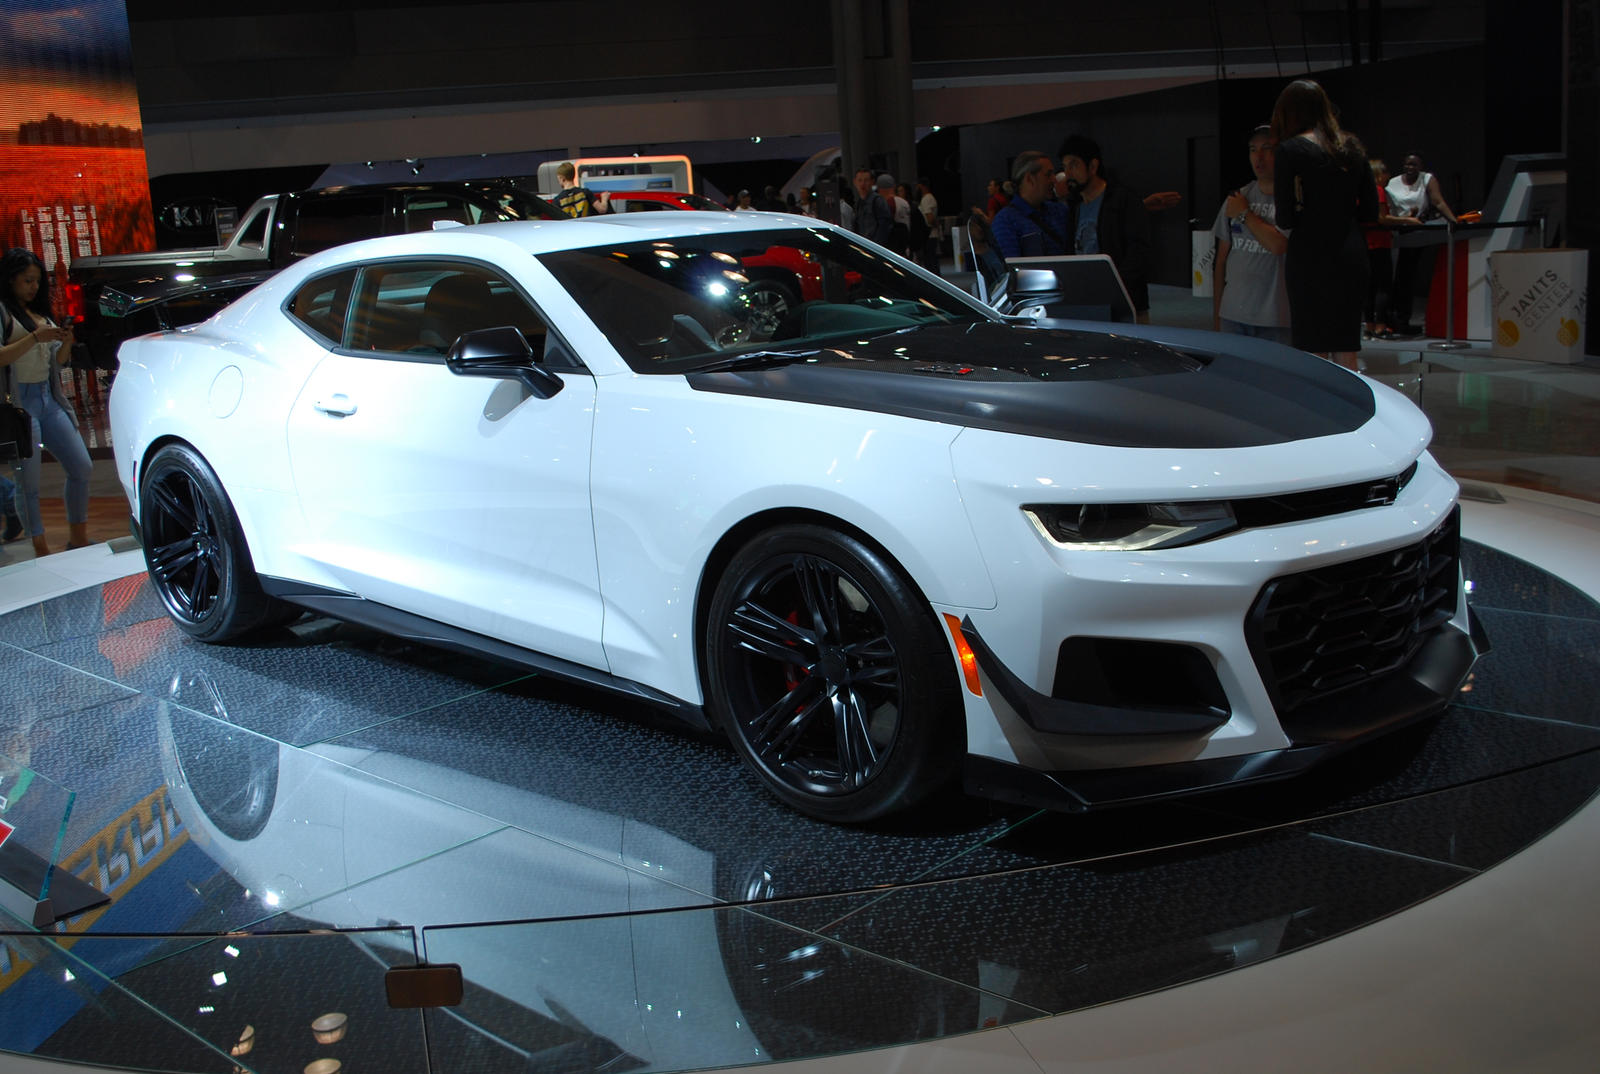 2018 chevrolet camaro zl1 1le. wonderful zl1 2018 chevrolet camaro zl1 1le coupe iii by hardrocker78 with chevrolet camaro zl1 1le